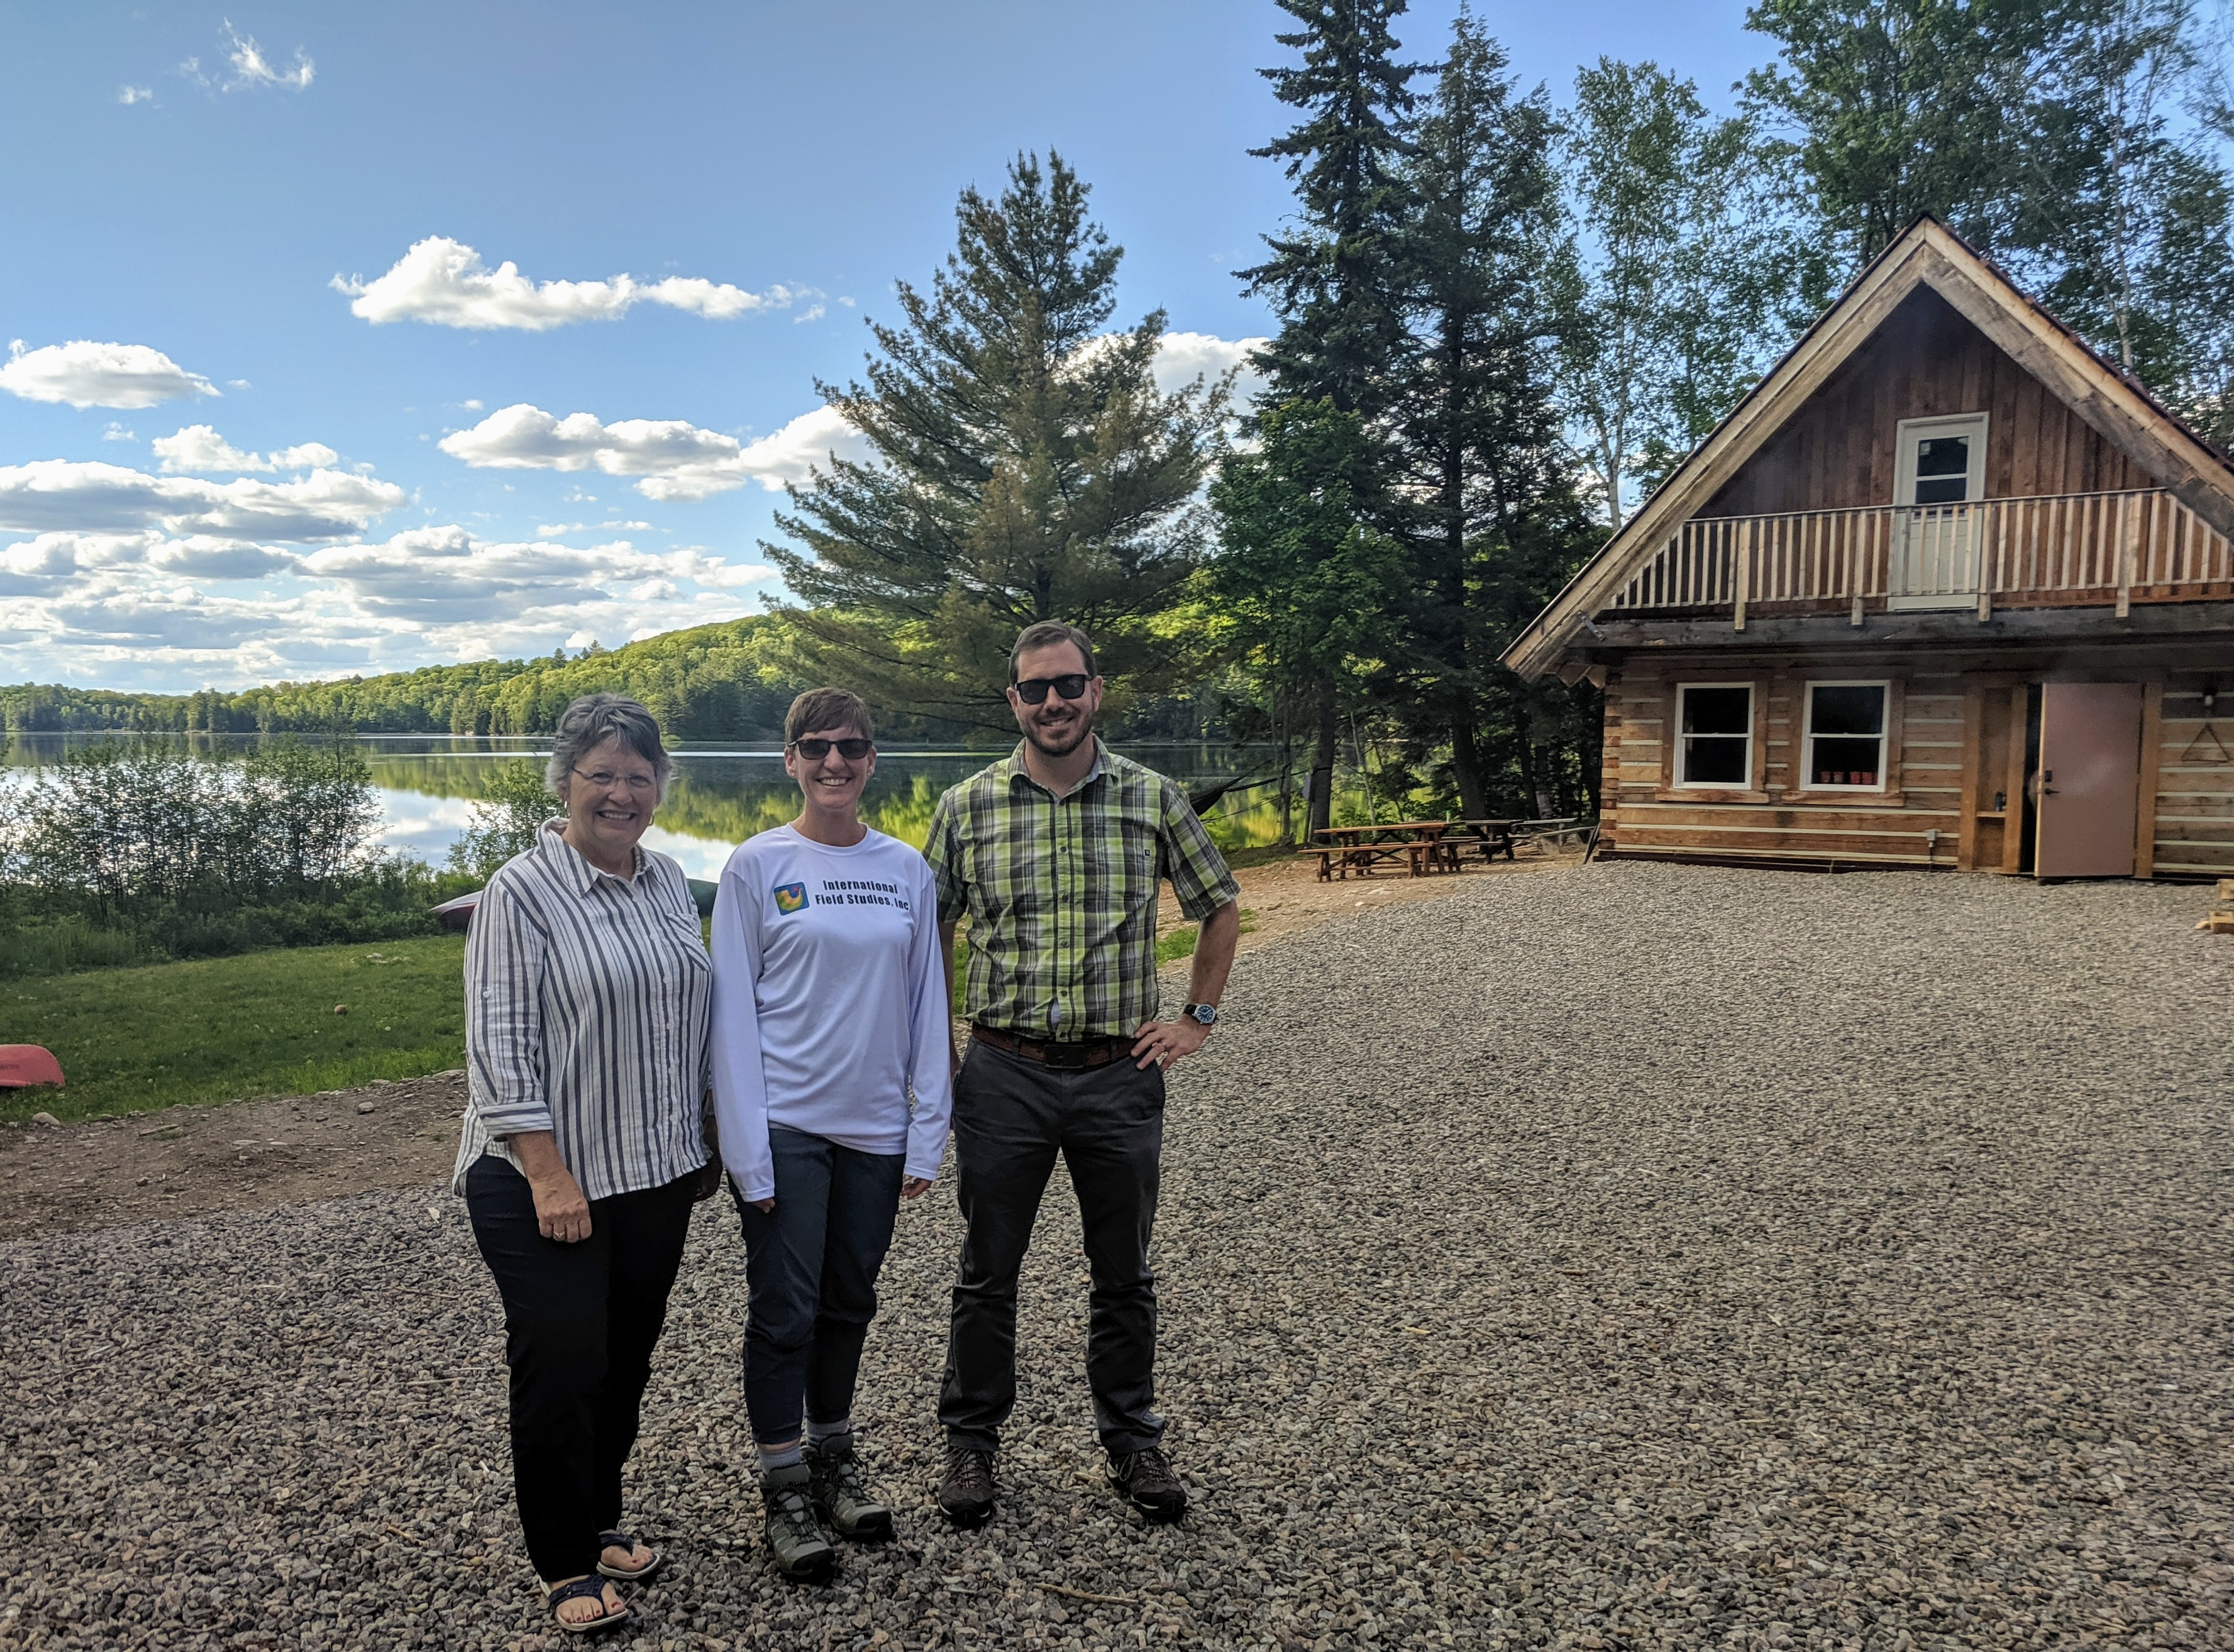 Dr. Betty Young, Dr. Myriah Davis, and Dr. Daniel Kelley from Hocking College Visit Haliburton Forest | Hocking College Celebrates 25 Years of Partnership with Haliburton Forest